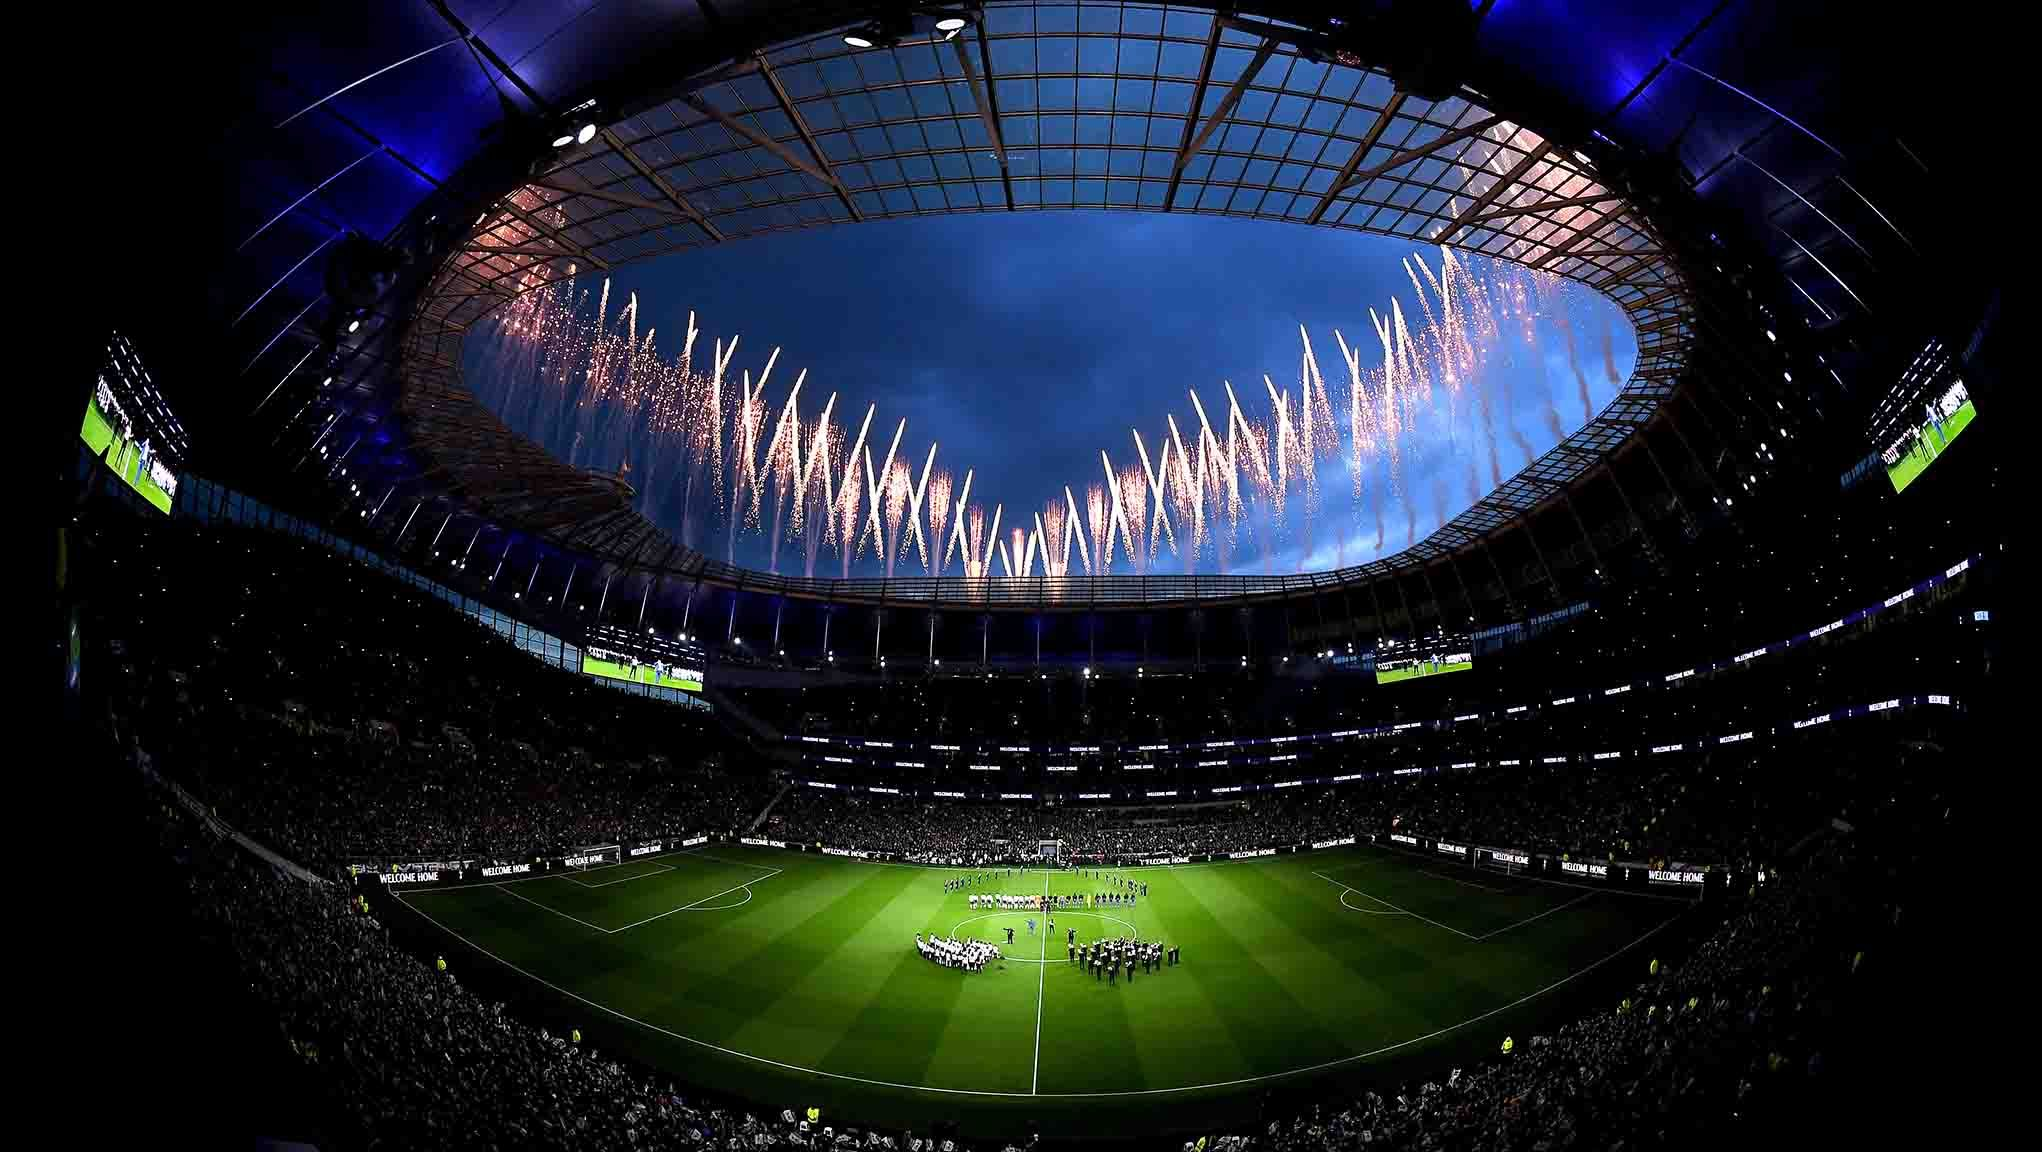 New Tottenham Stadium To Stage Rugby Cup Finals In 2021 In 2020 Tottenham Hotspur Tottenham Stadium Design